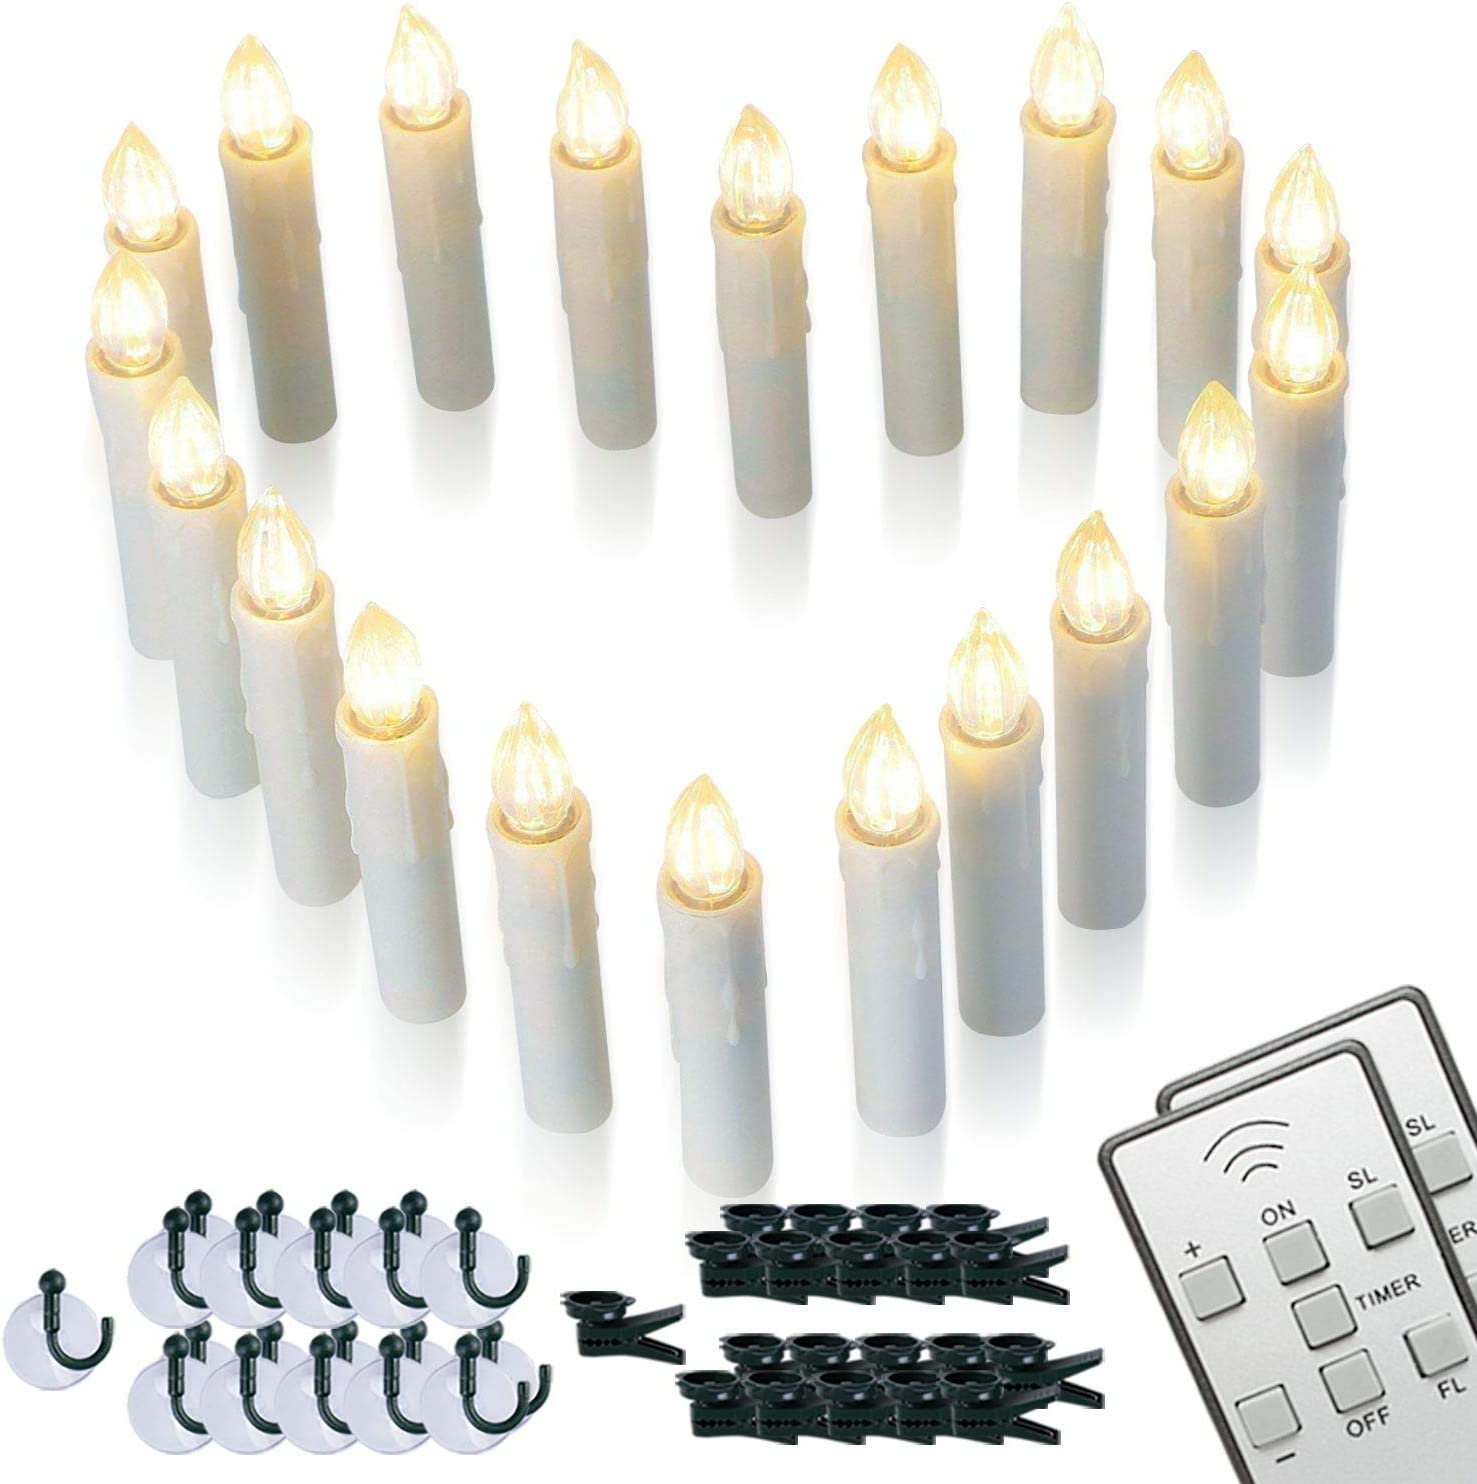 Homemory 20 PCS LED Window Candles with Remote Timer, Battery Operated Flameless Taper Christmas Candles Light with Clips/Suction Cups, Flickering Warm White Light, Dia 0.7''x 4''